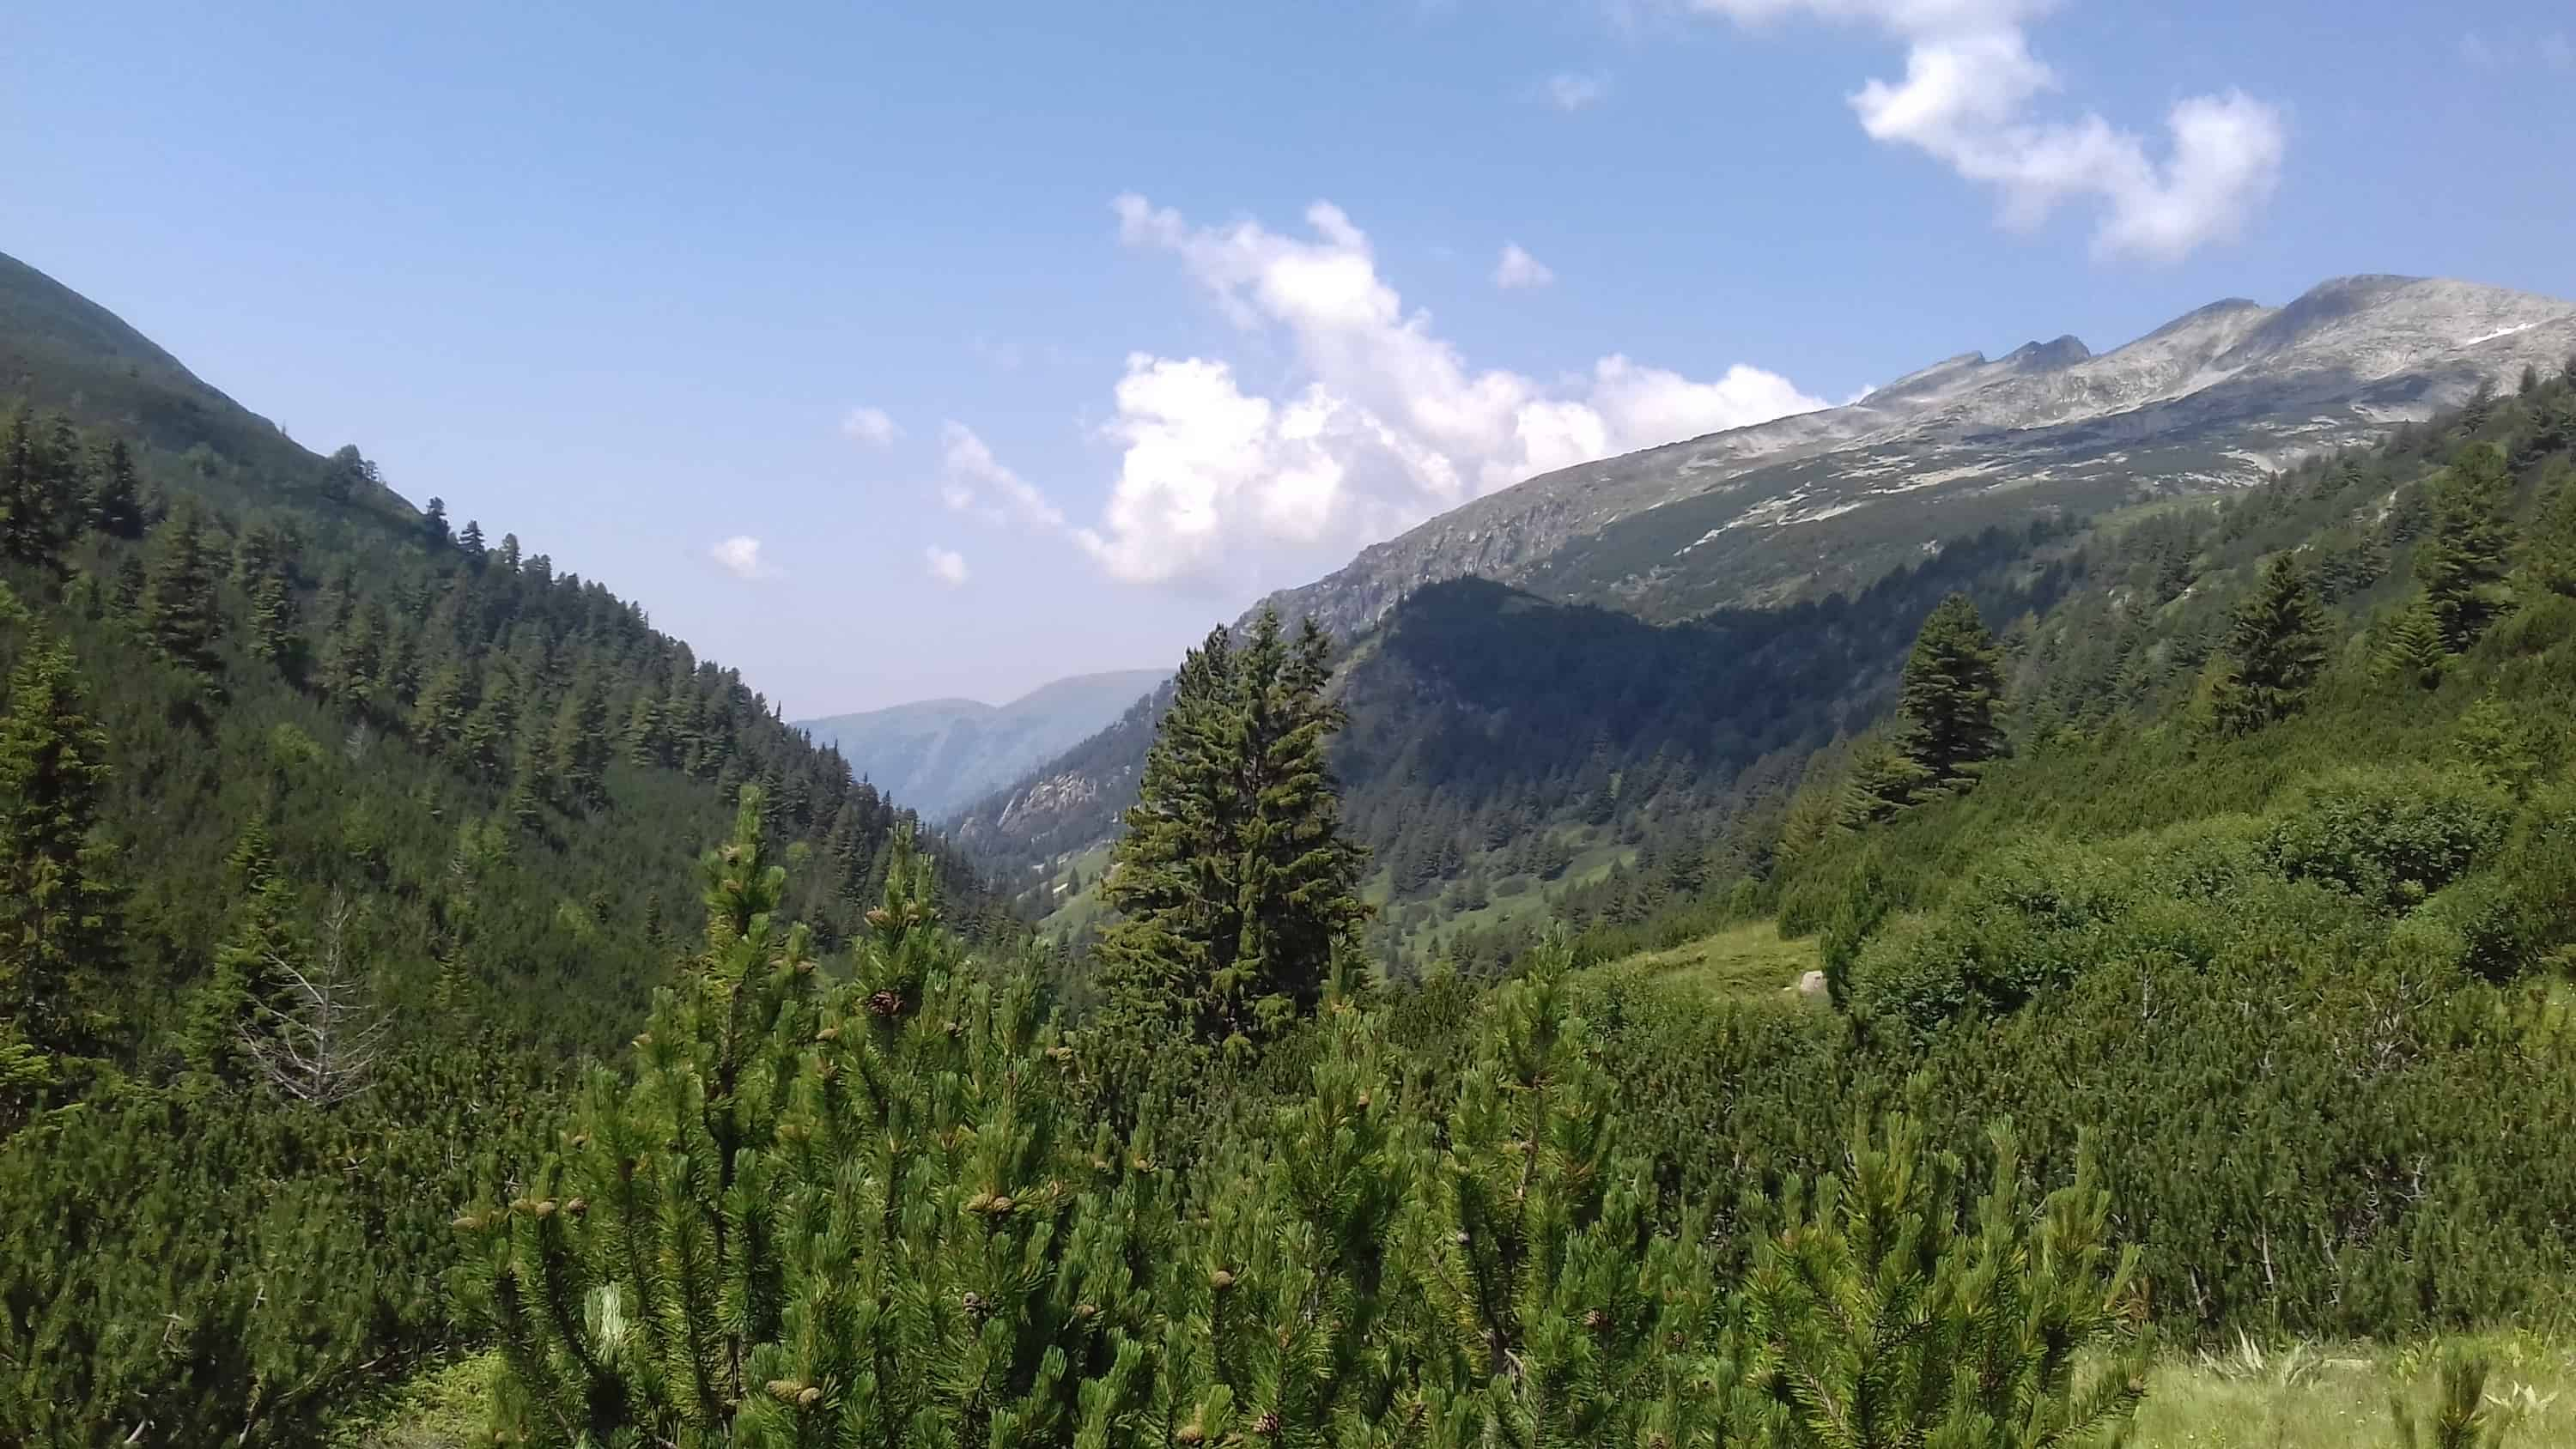 View from Kobilino Braniste - Photo: Rila Monastery Park Directorate